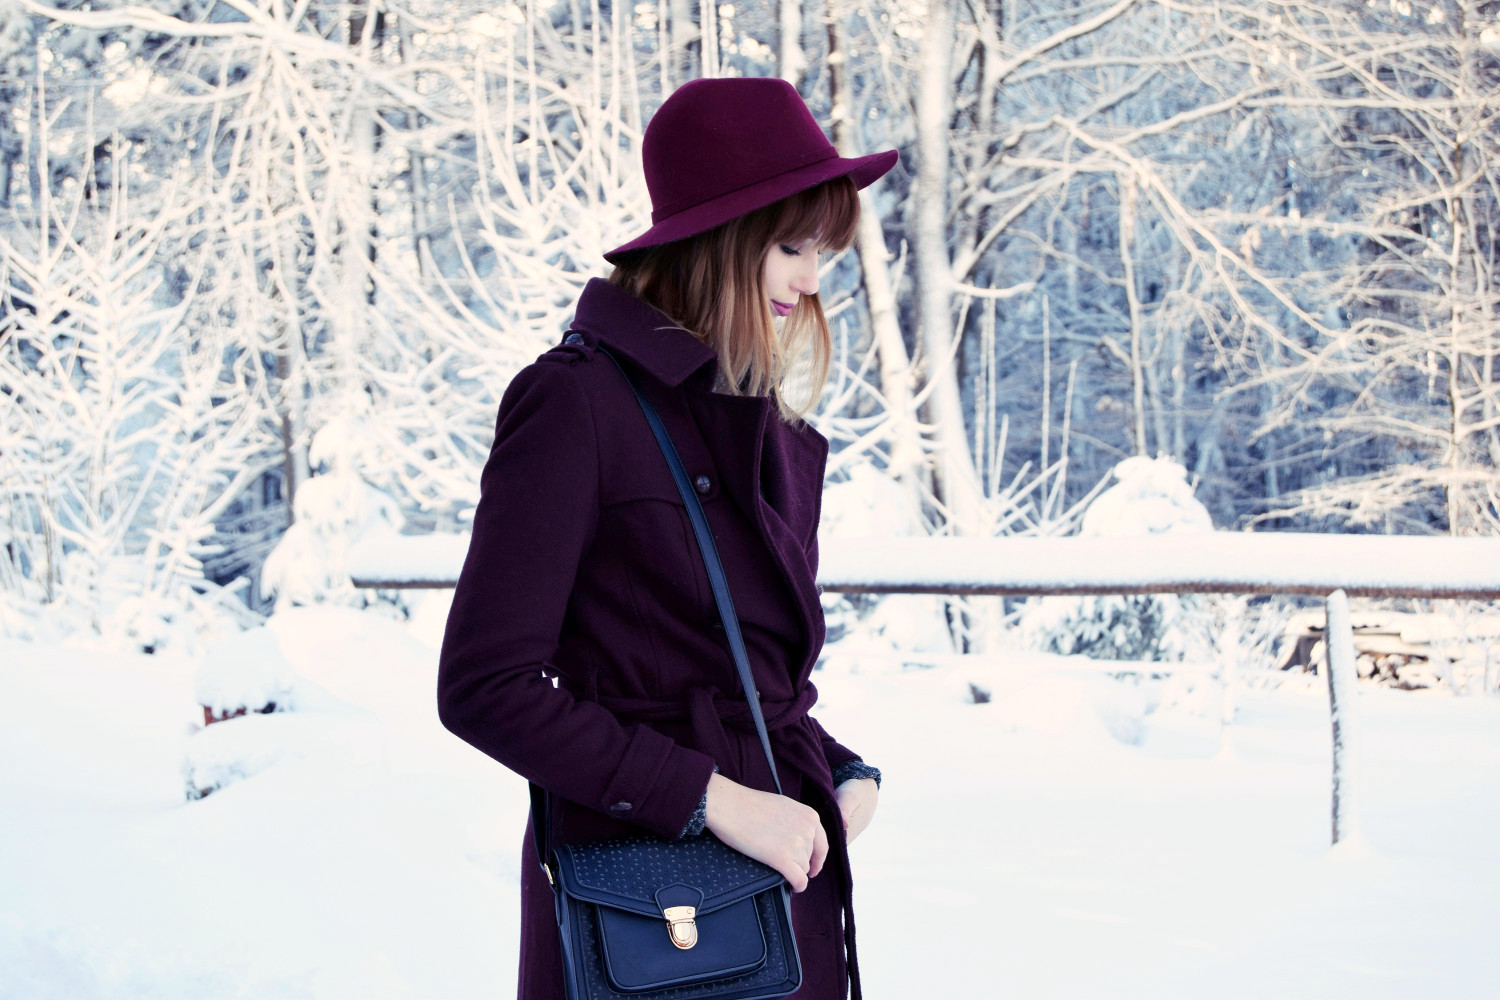 Winter_outfit_bordeaux_snow_Zalabell_fashion_6